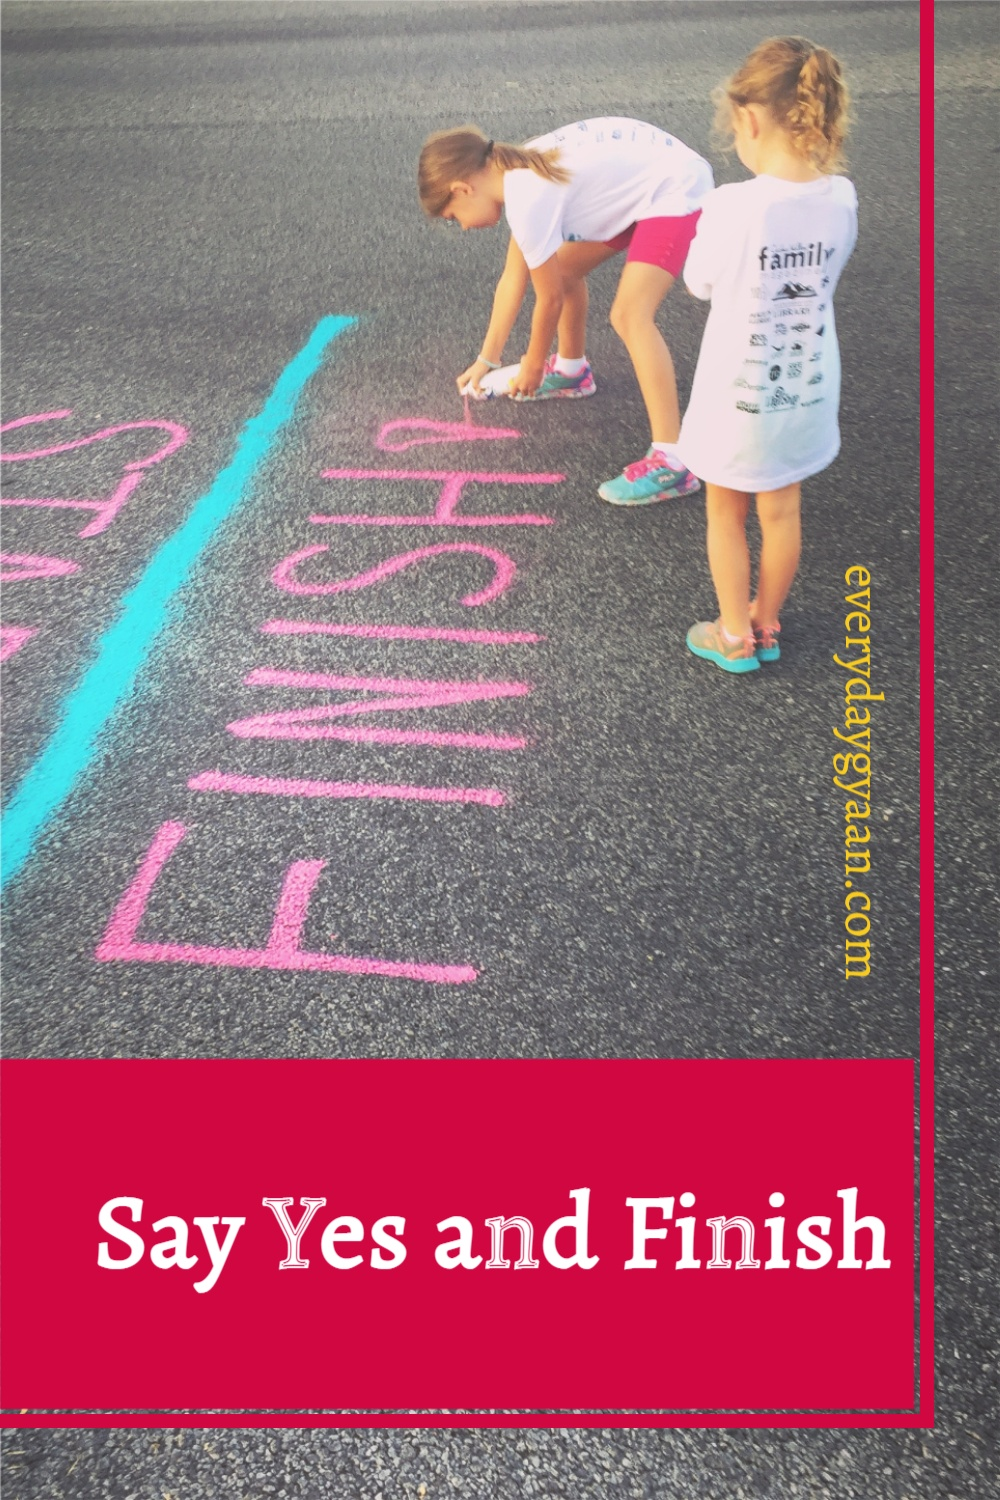 Say Yes and Finish